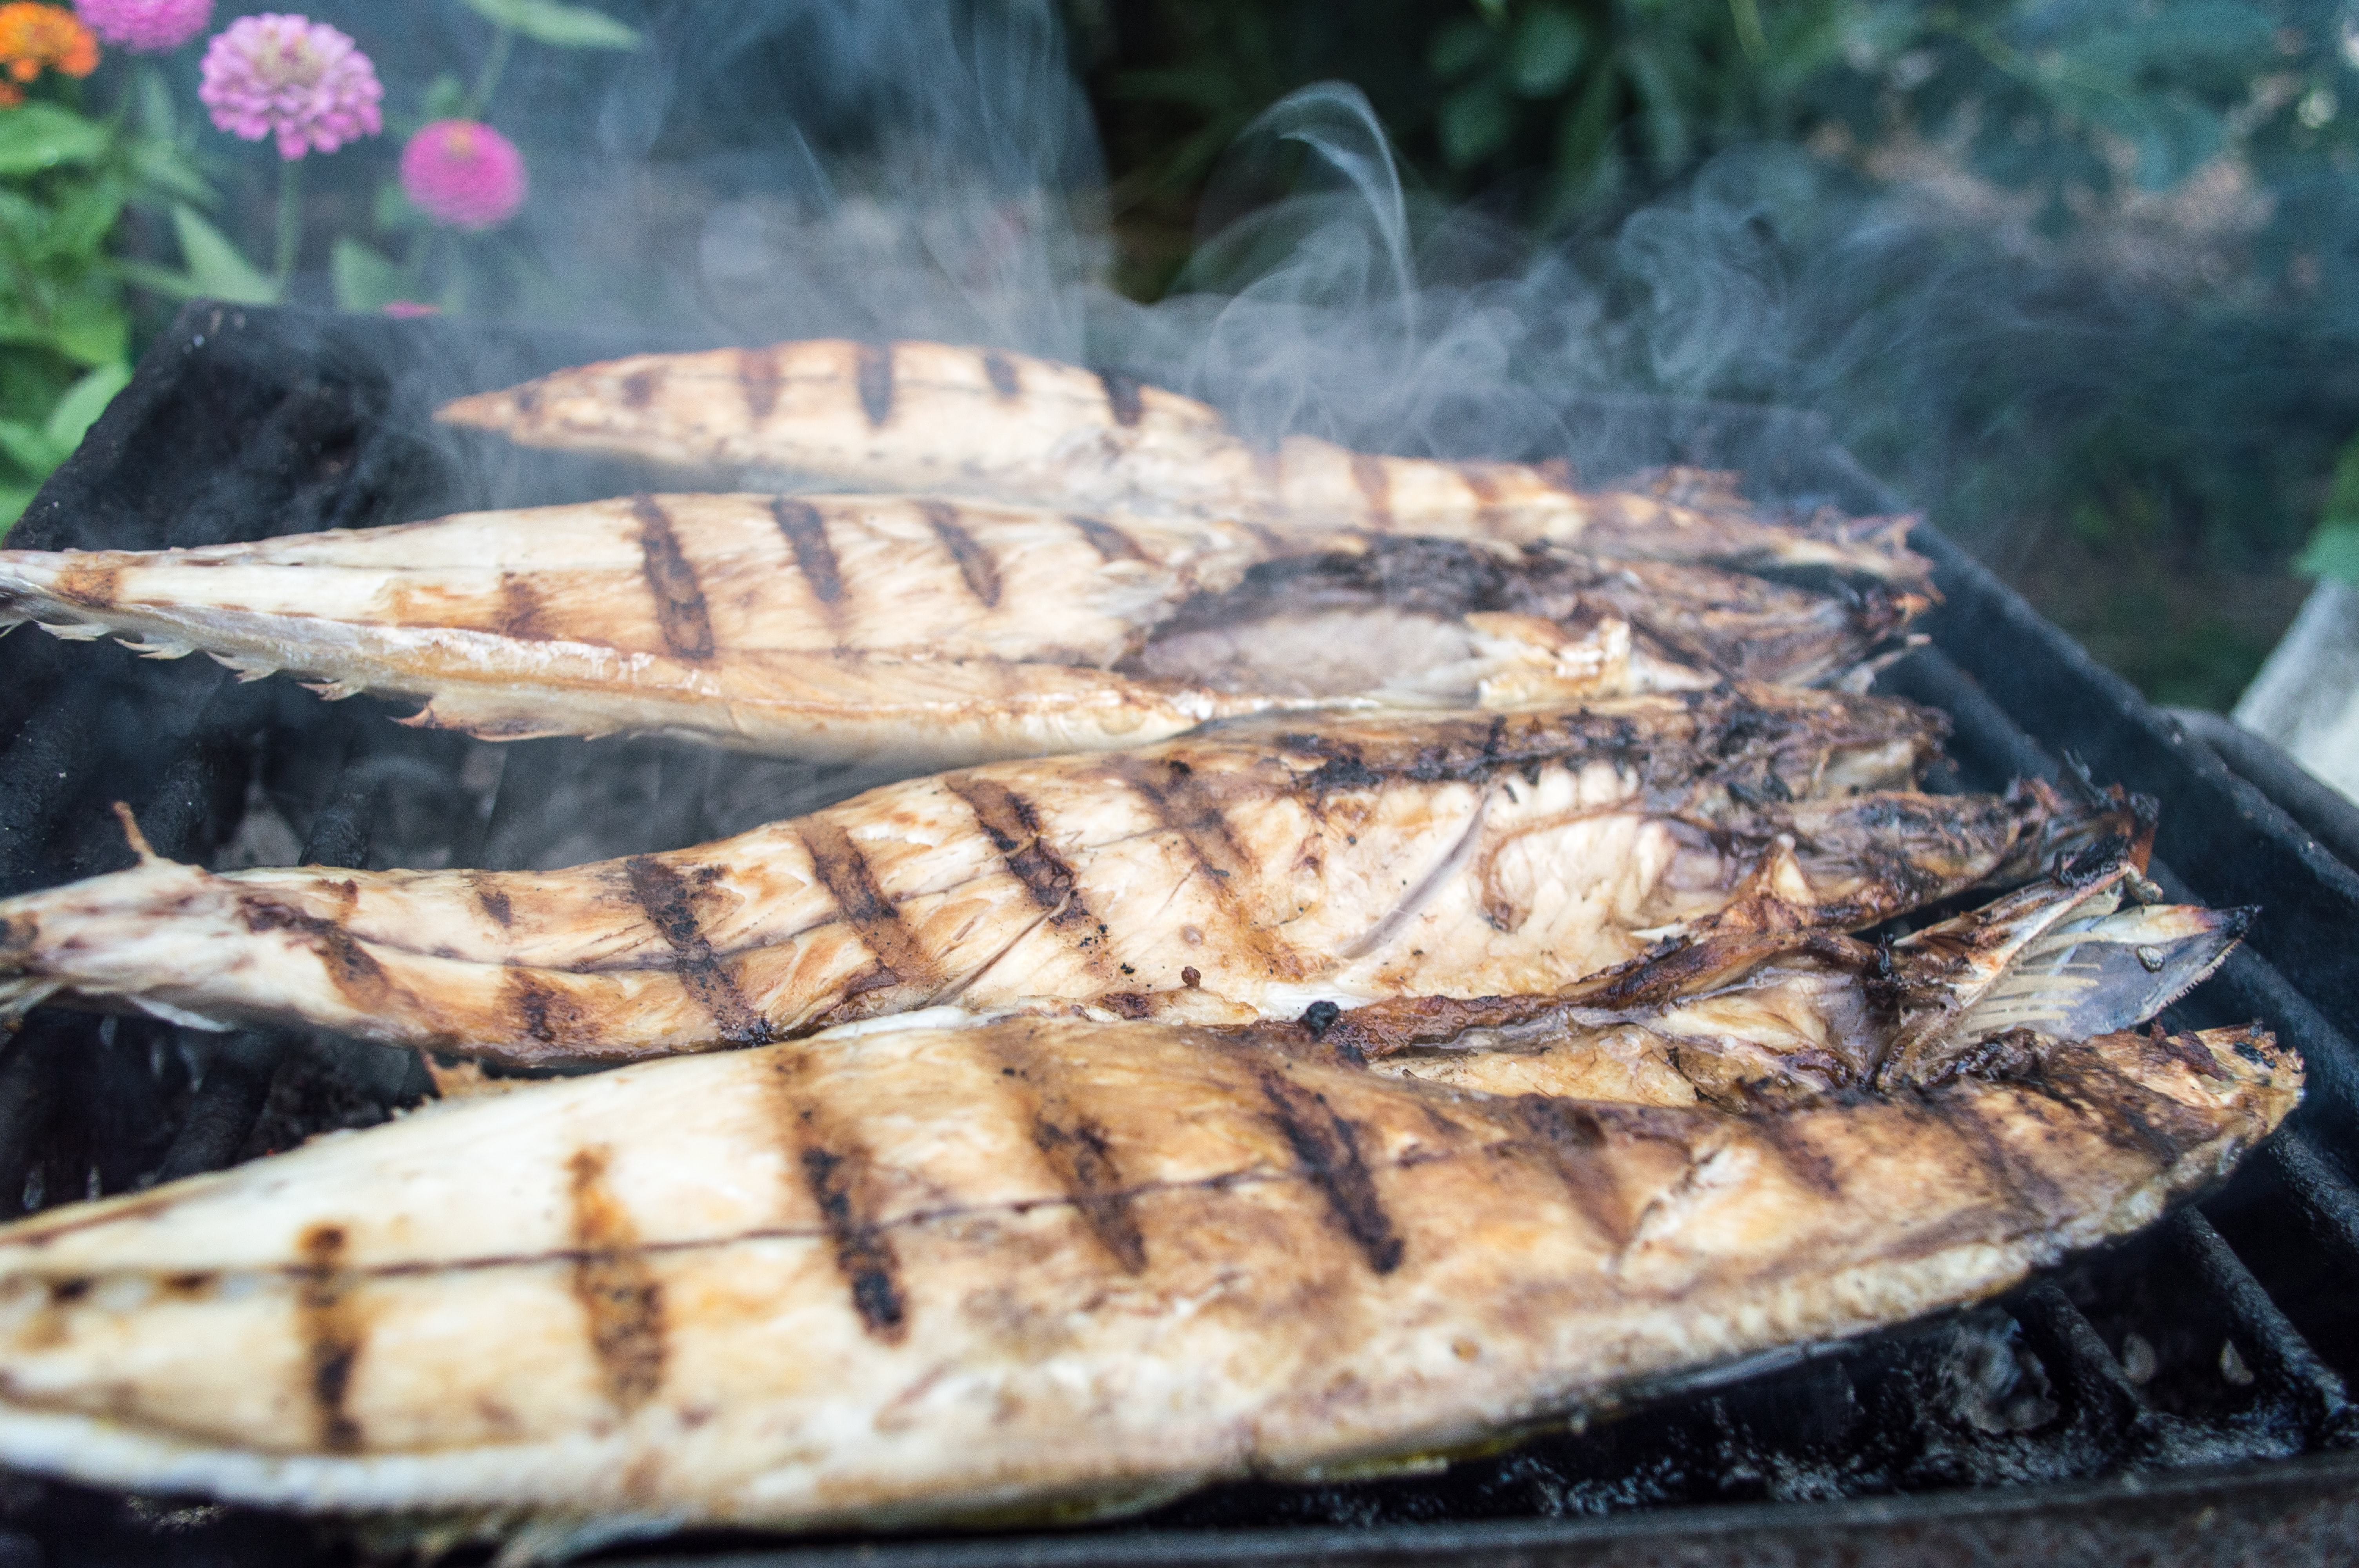 Multiple barbecued fish sizzling on a grill